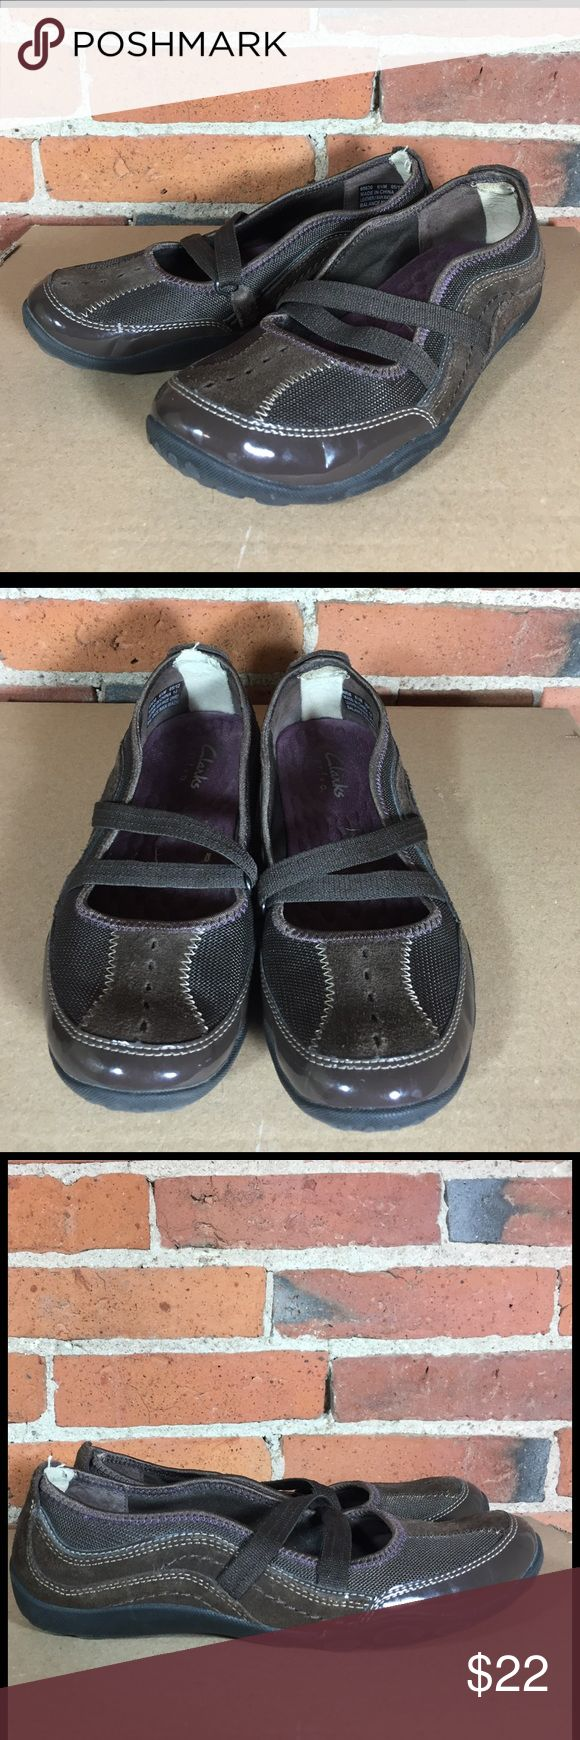 Clark's Privo Shoes Brown Comfort Flats Mary Jane Clark's Privo ladies' shoes -- brown canvas & suede Mary Jane-style strap Size 6.5M Very good condition -- light wear, see photos Clarks Shoes Flats & Loafers